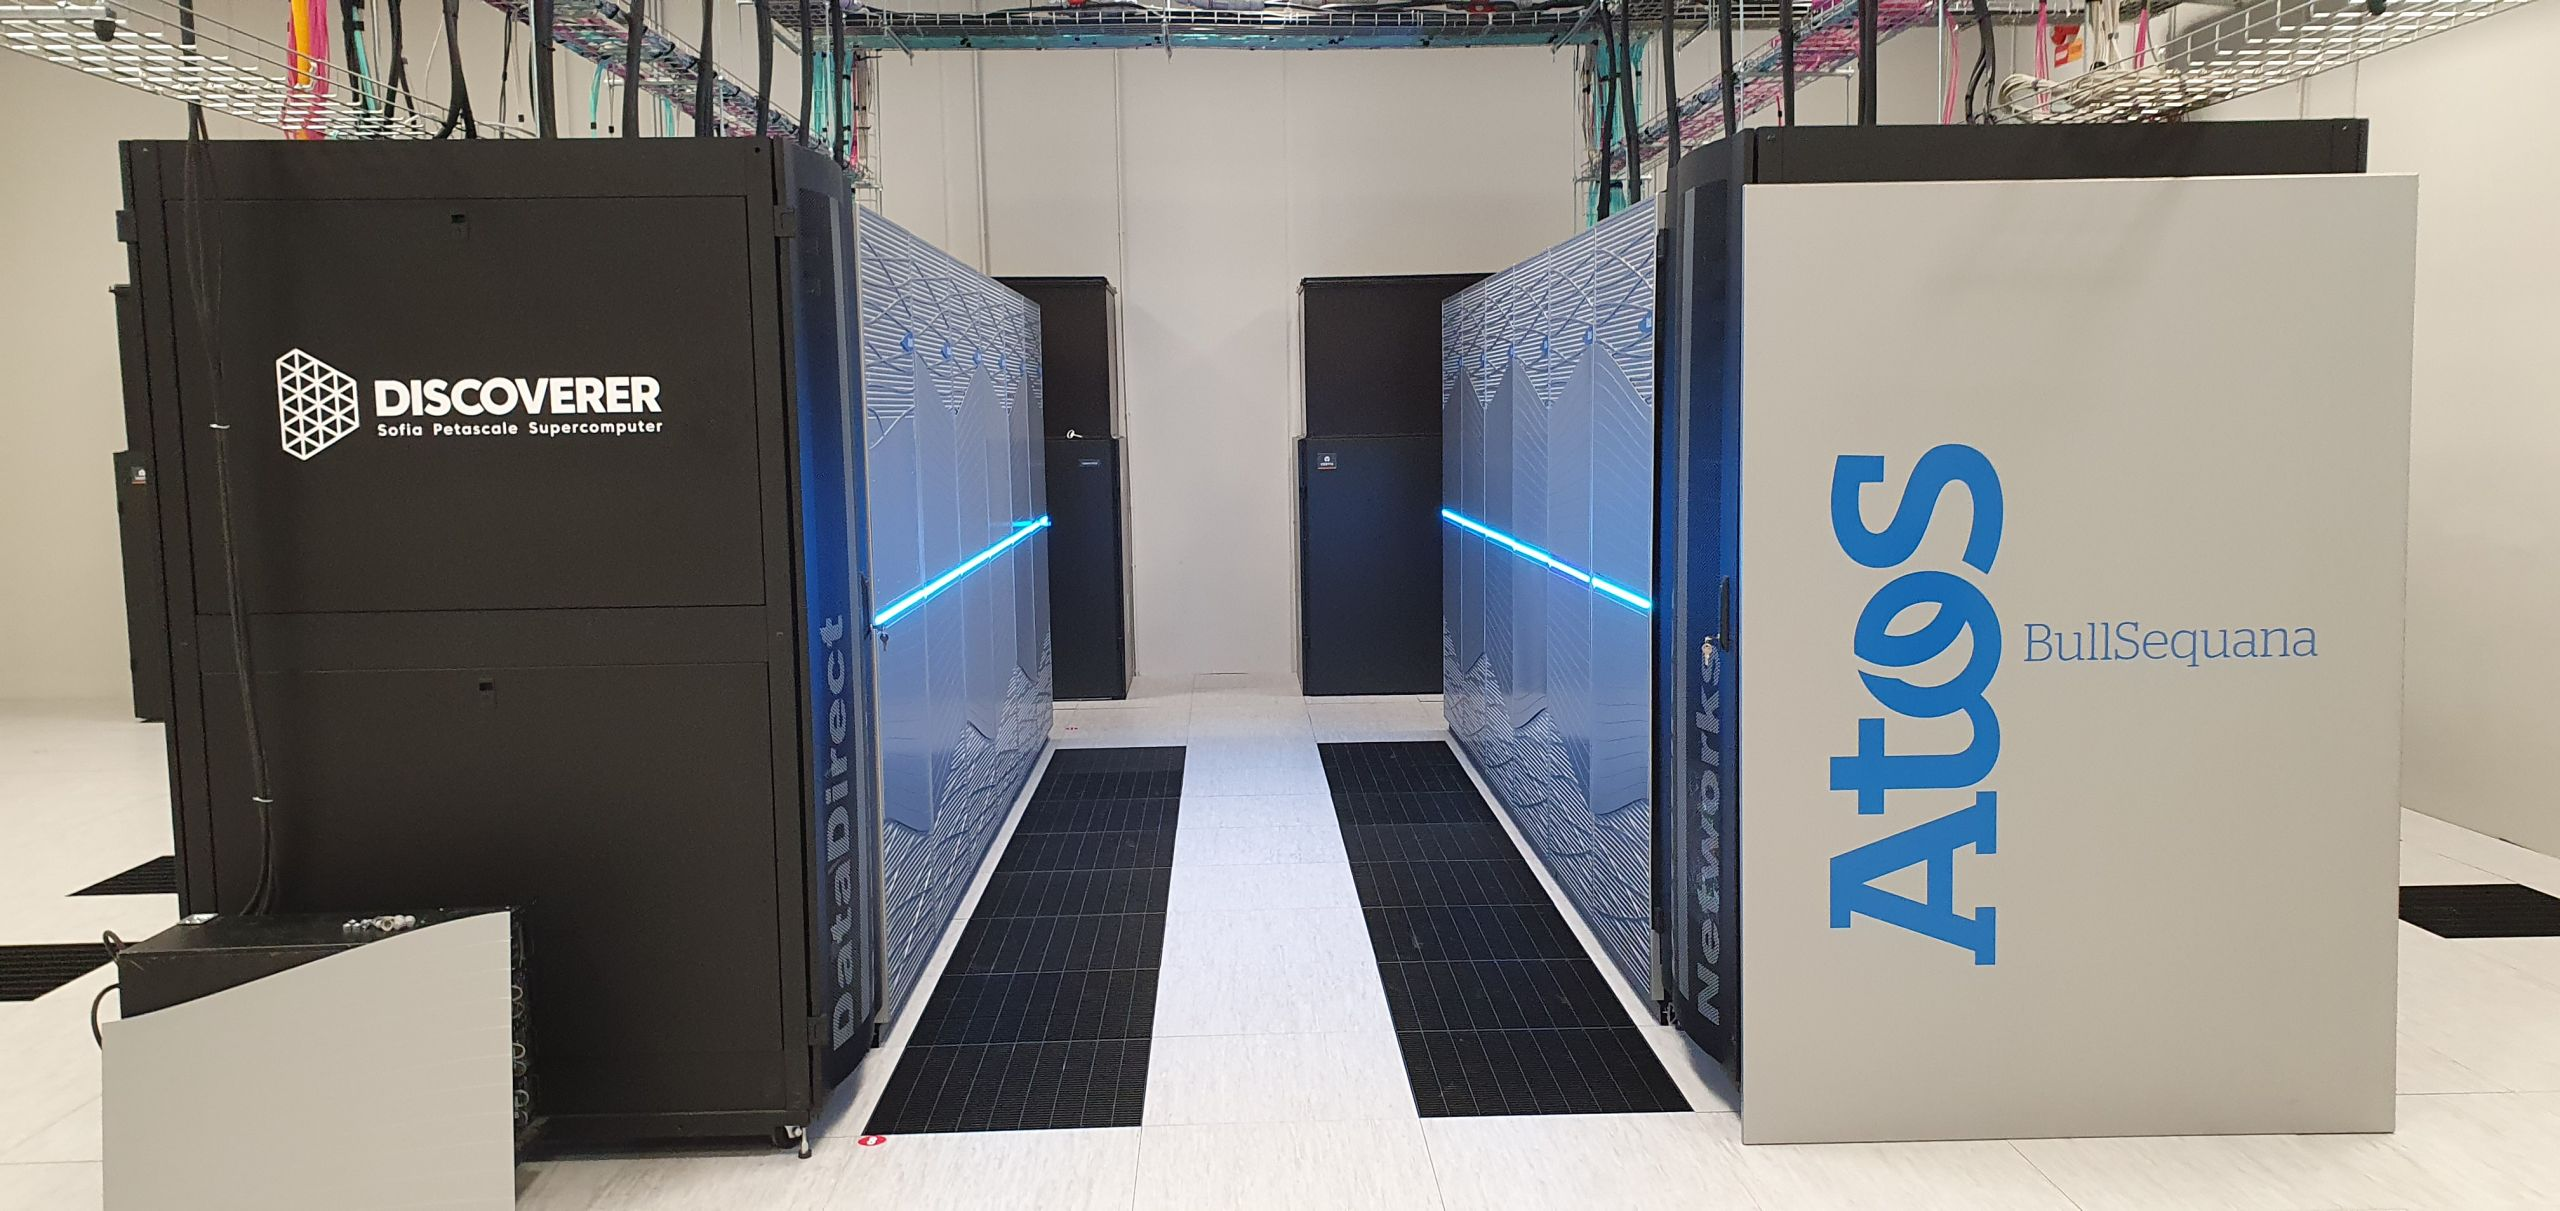 THE DISCOVERER SUPERCOMPUTER HAS EXCEEDED THE PLANNED COMPUTING POWER DURING TESTS